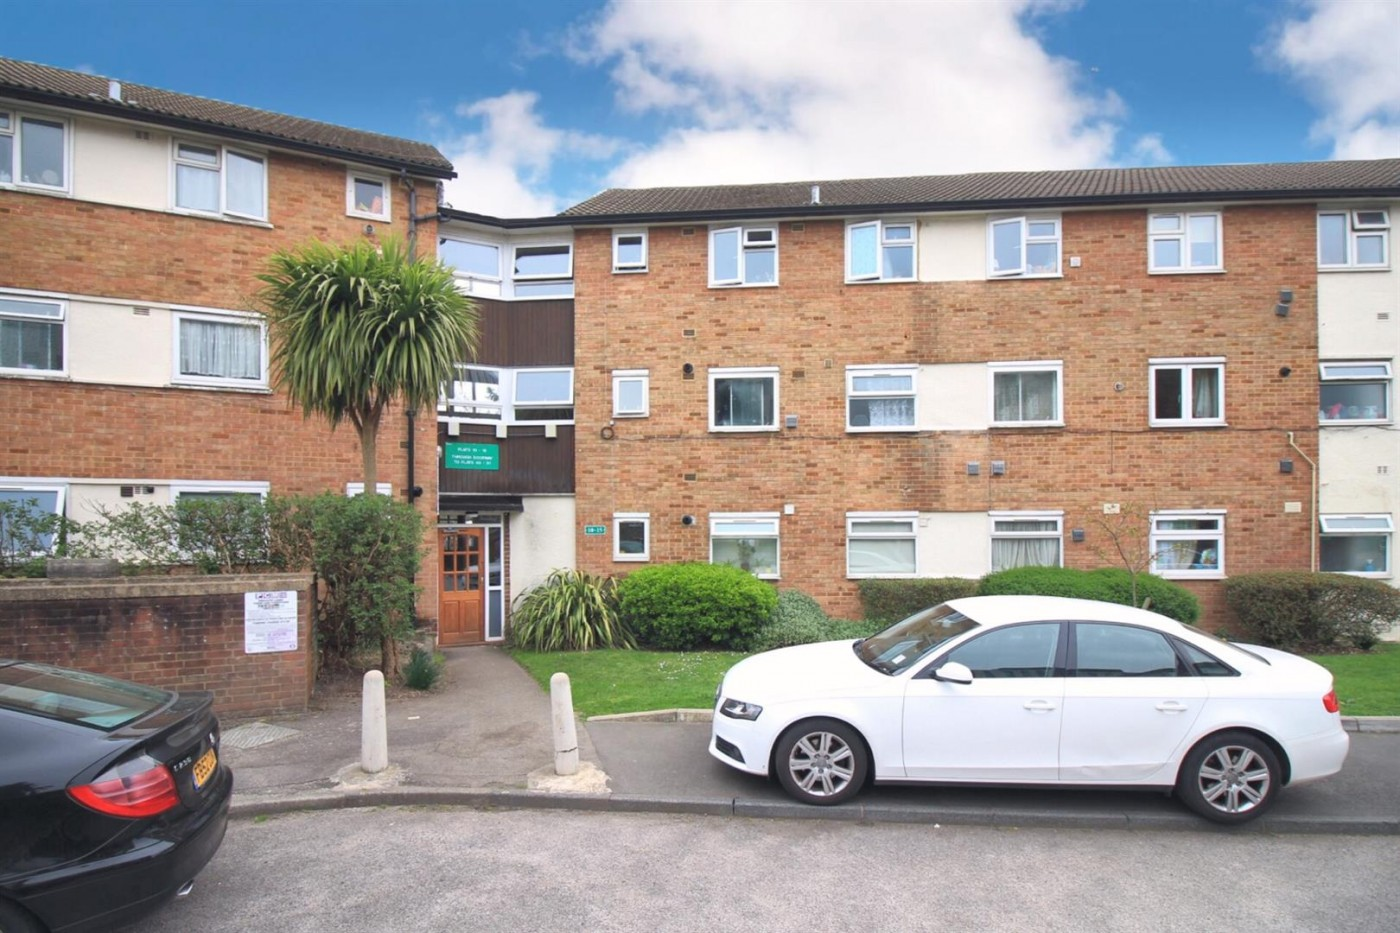 Images for Sefton Court, Jersey Road, Hounslow, TW3